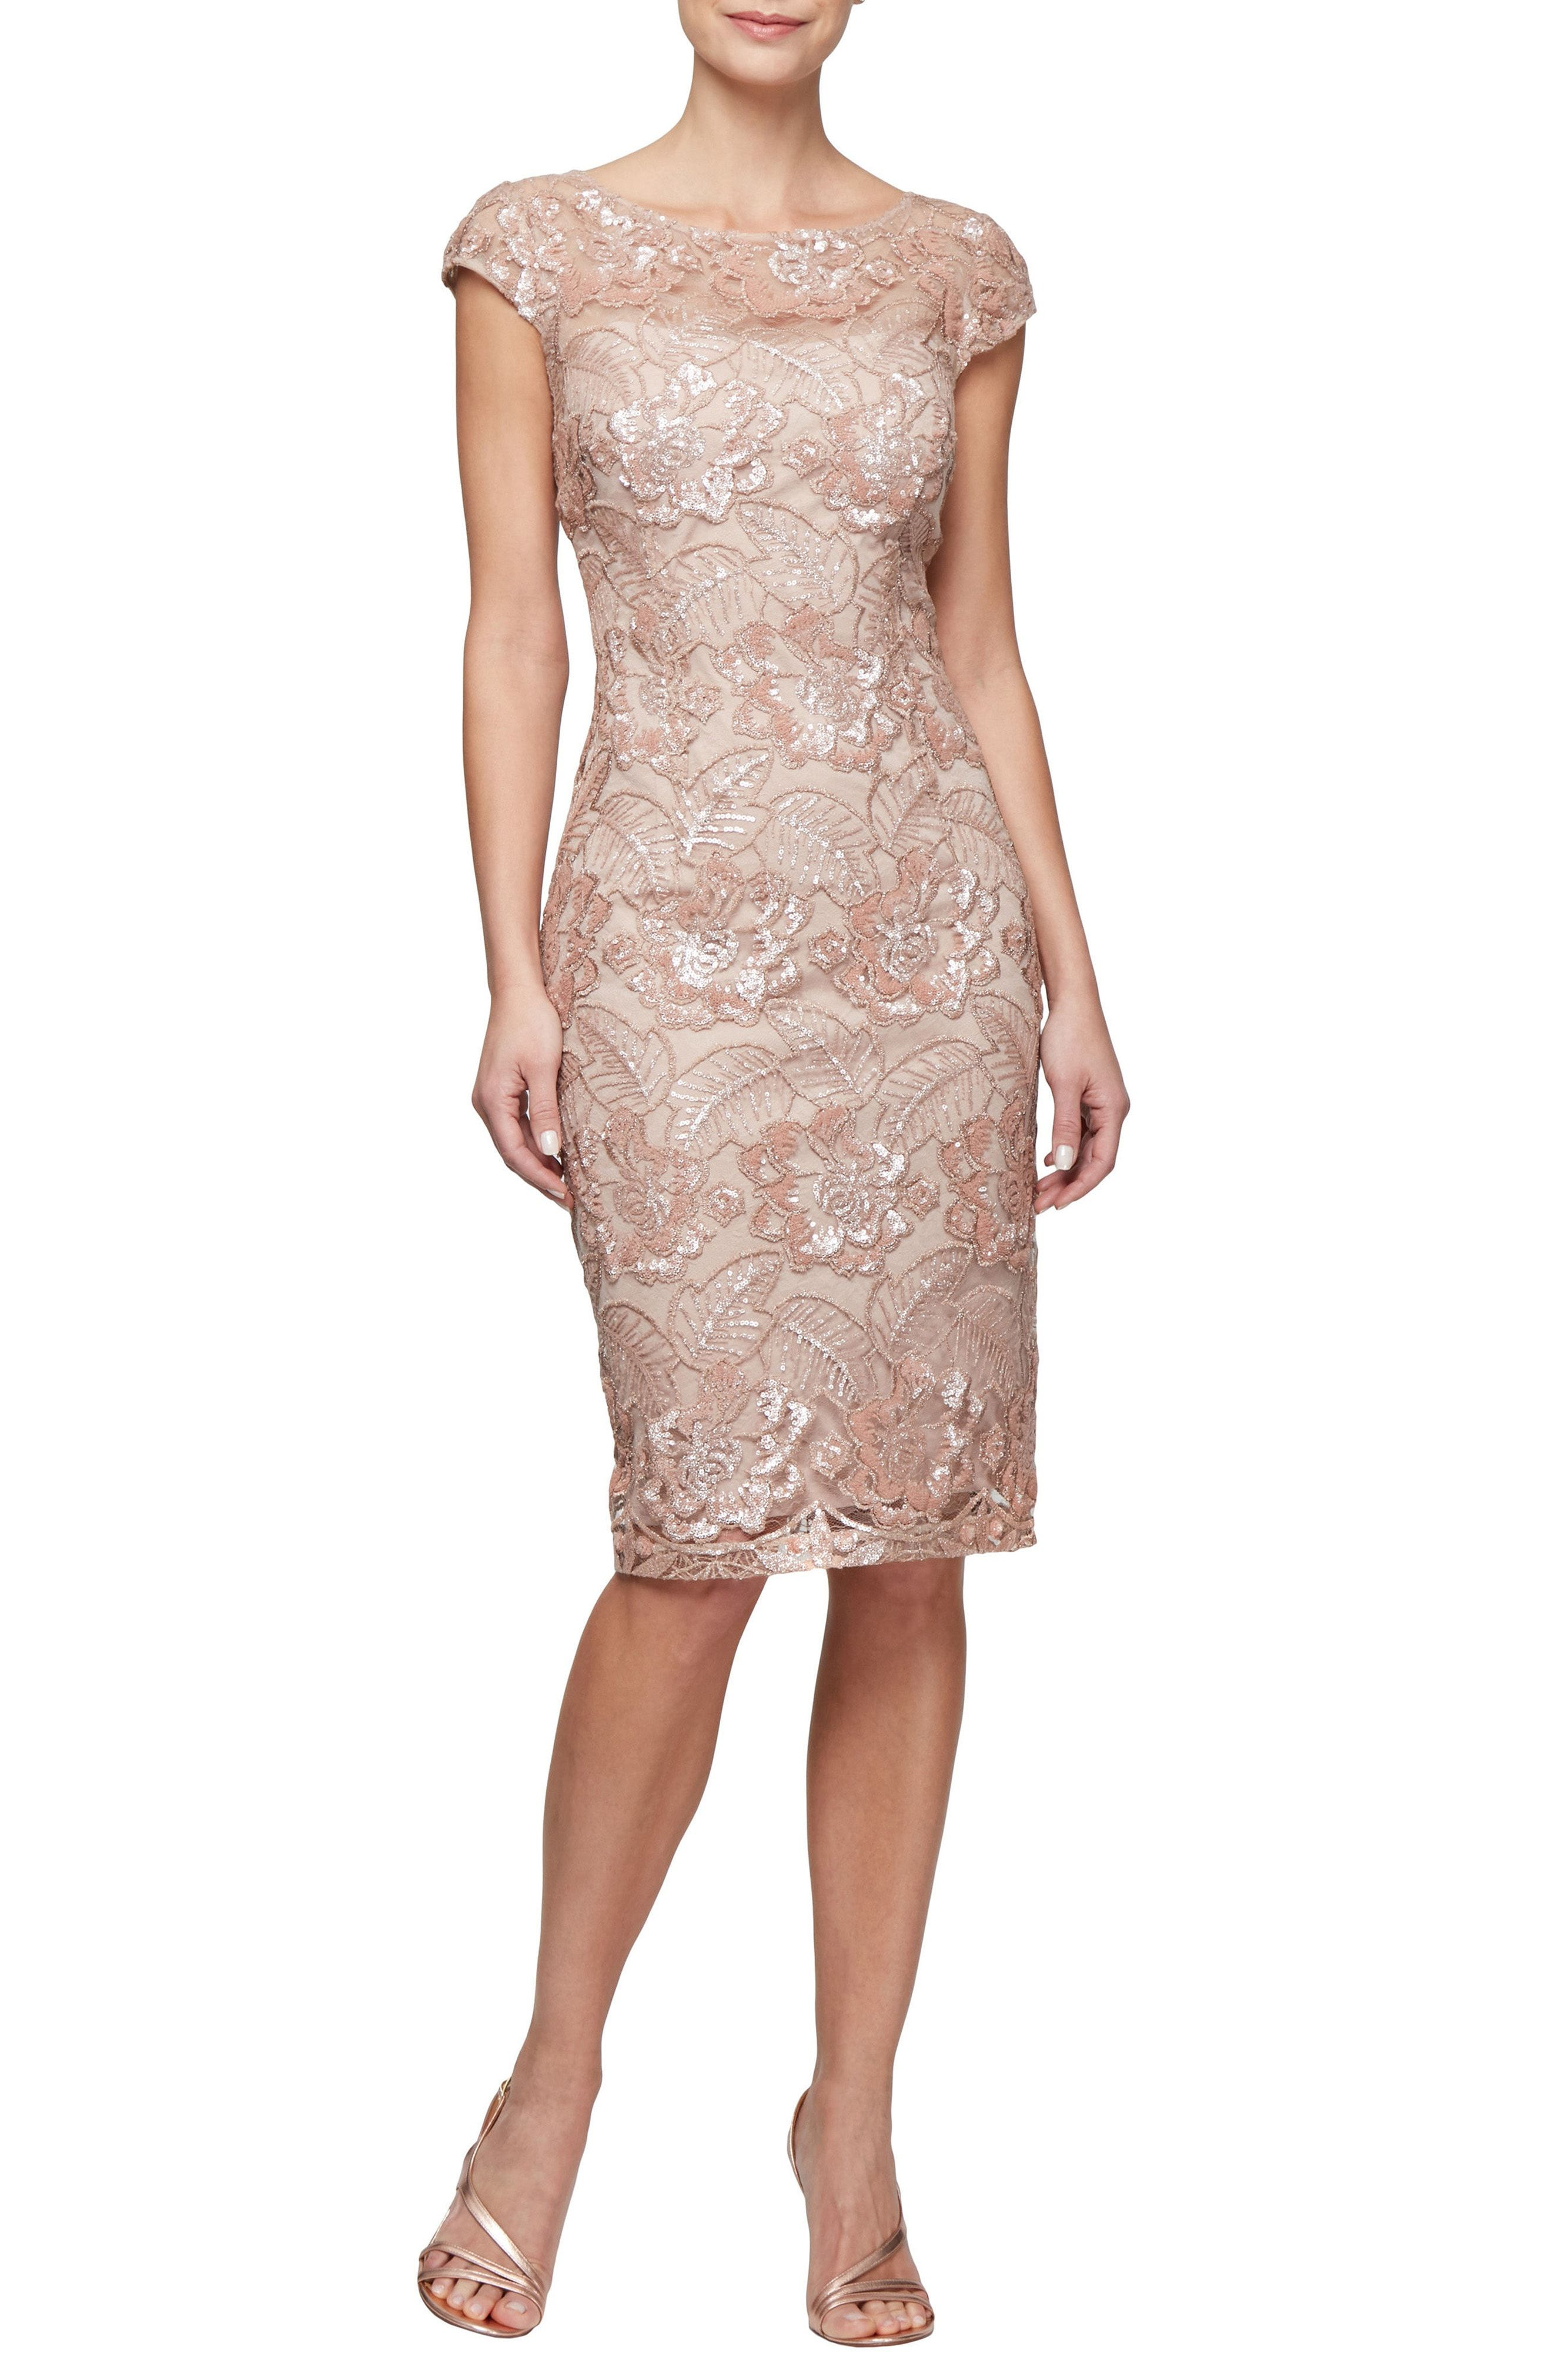 d5360dcbb9e Rose gold lace sheath dress with short sleeves for Mother of the Bride   motherofthebride  affiliate  rosegold